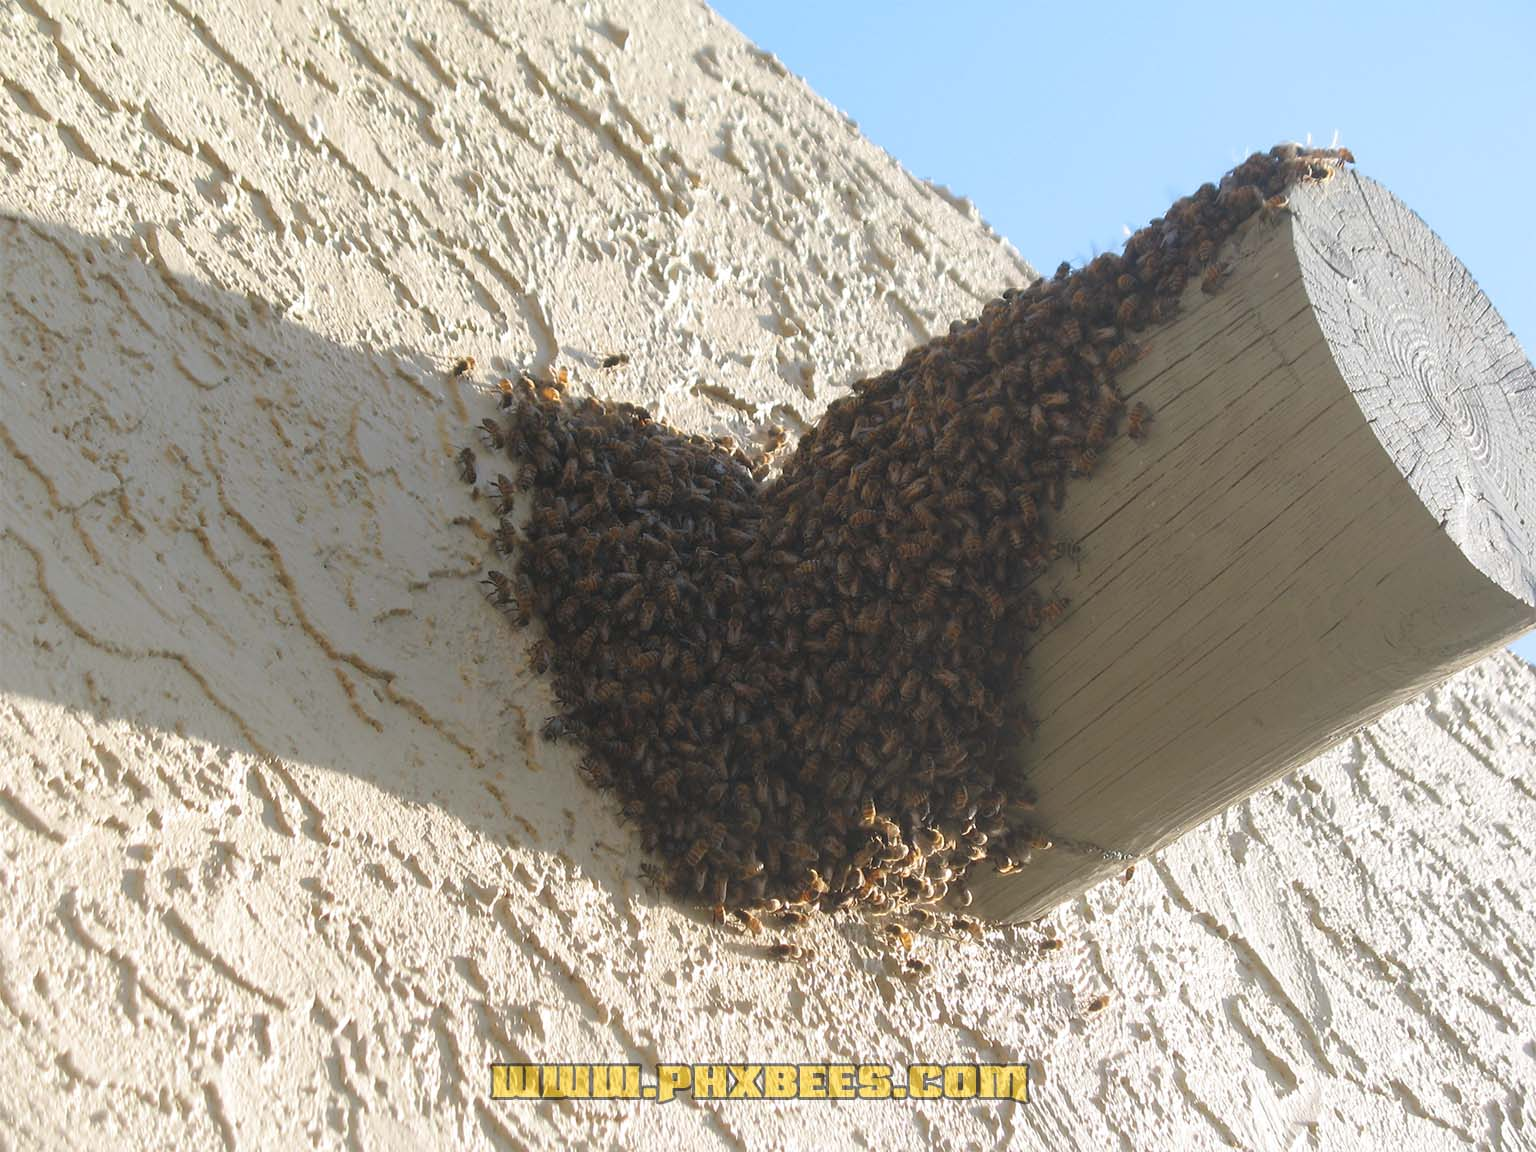 Bees on a viga log moving in